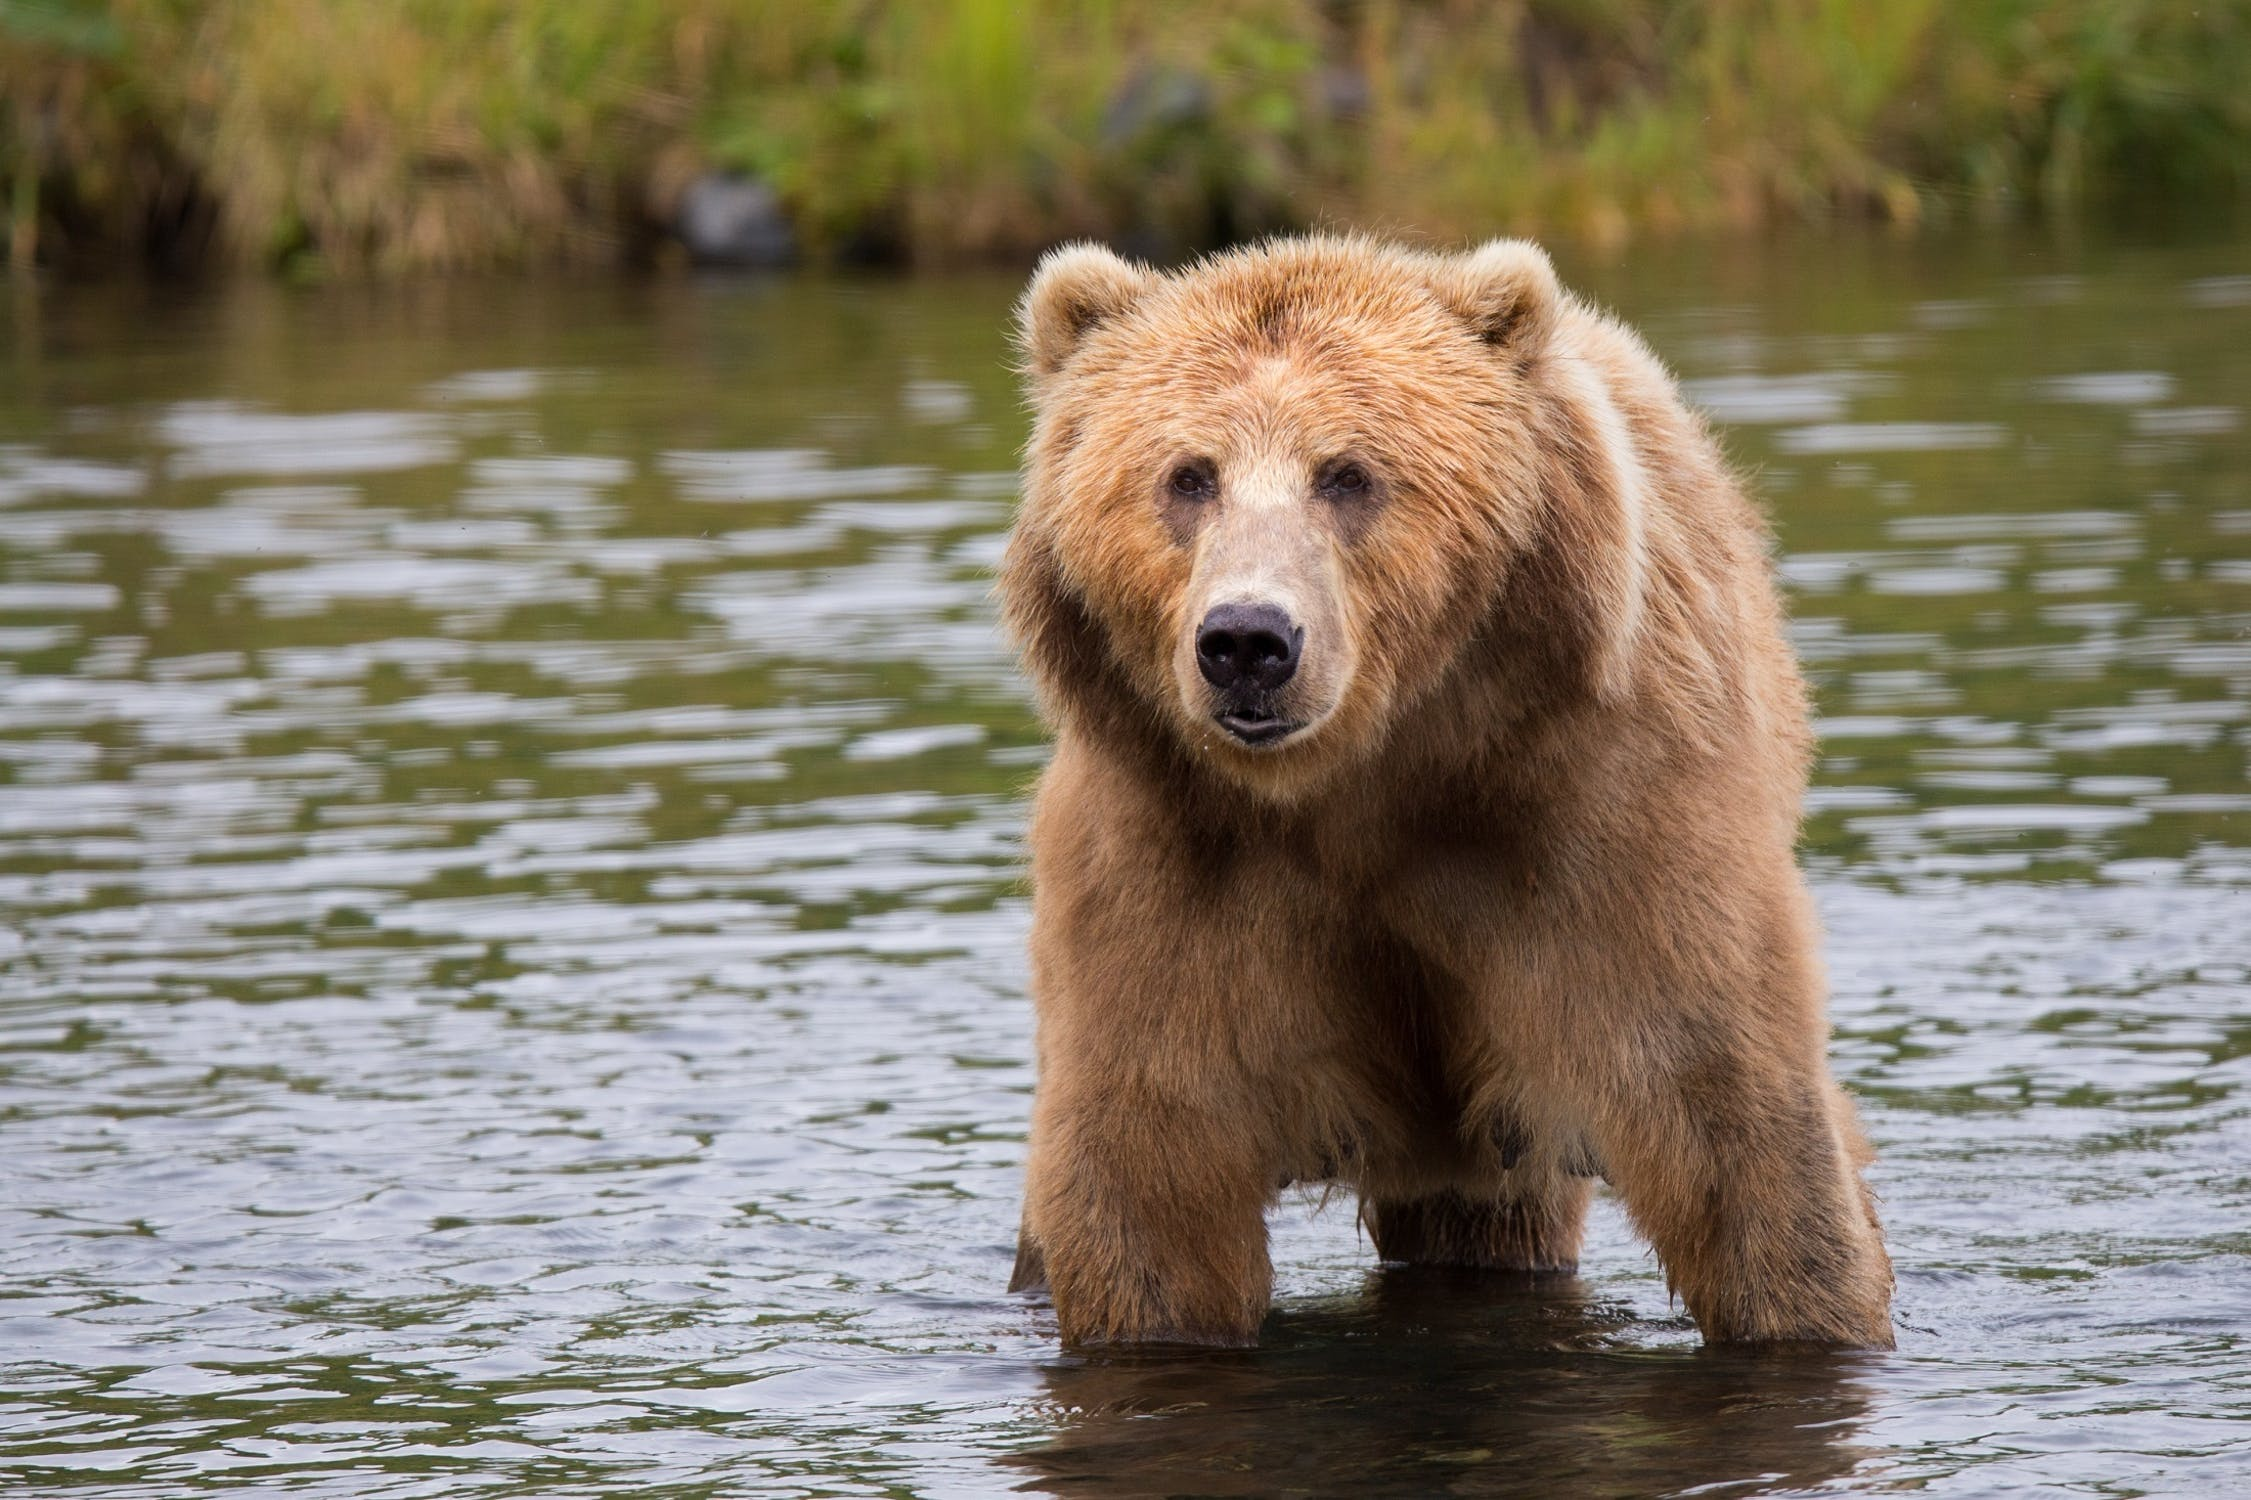 Covid – 19: You can't outrun a bear!